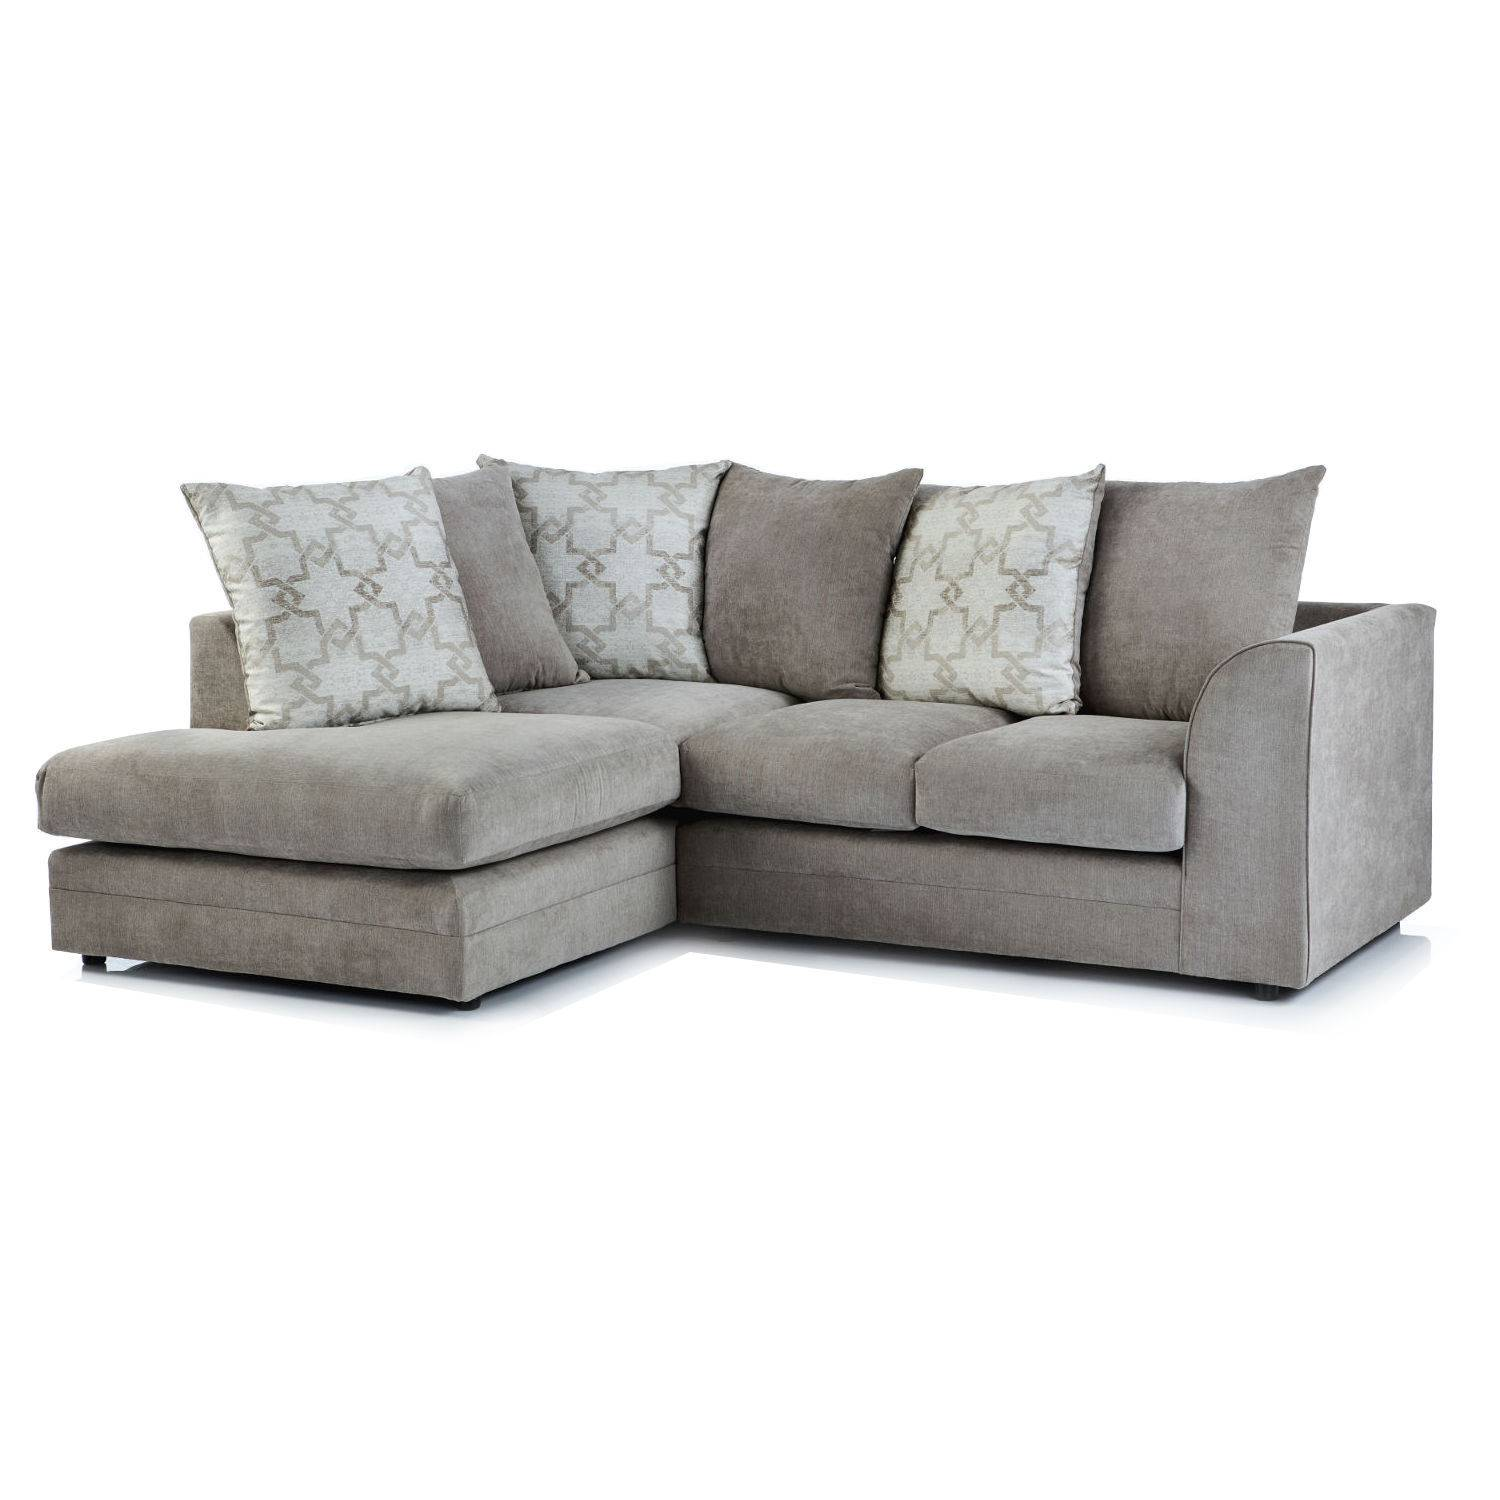 Small Corner Sofa friendu0027s email address * EJPXWWT